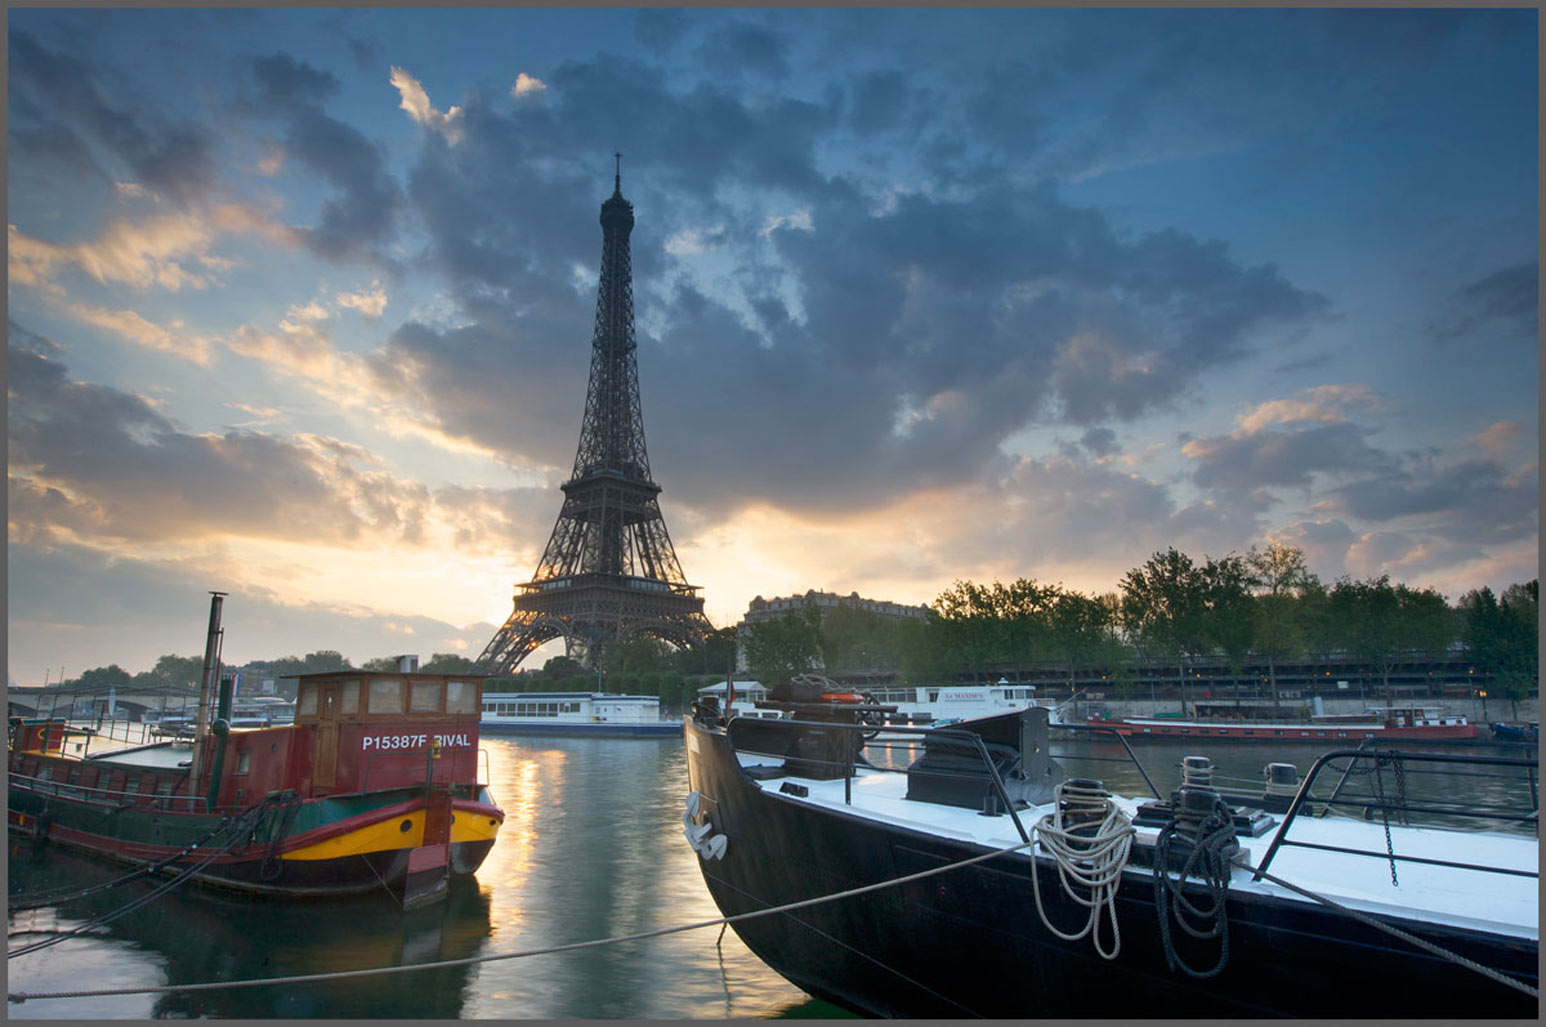 Eiffel Tower sunrise - photography architectural